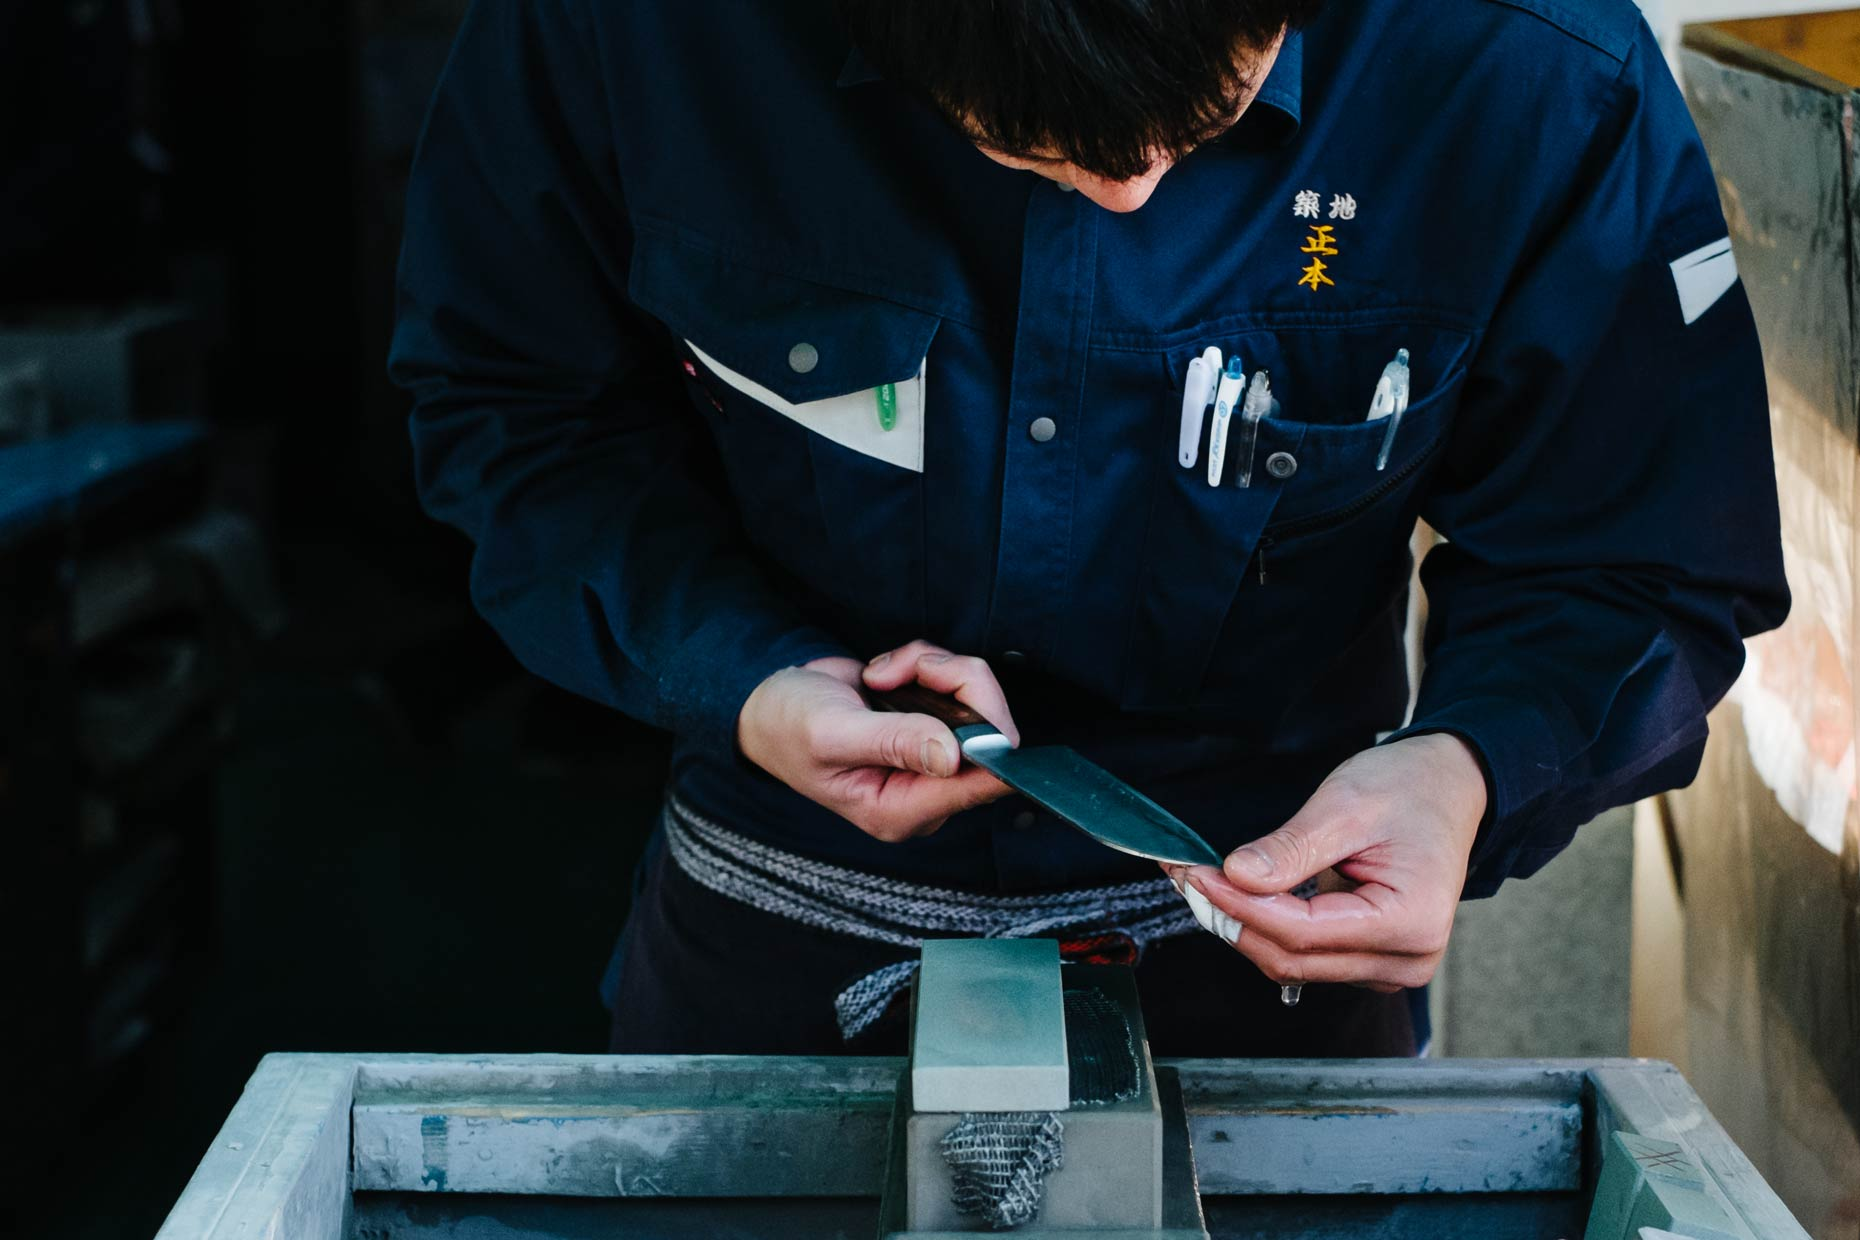 Kristin Teig Photography | Knife sharpening - Tsukiji